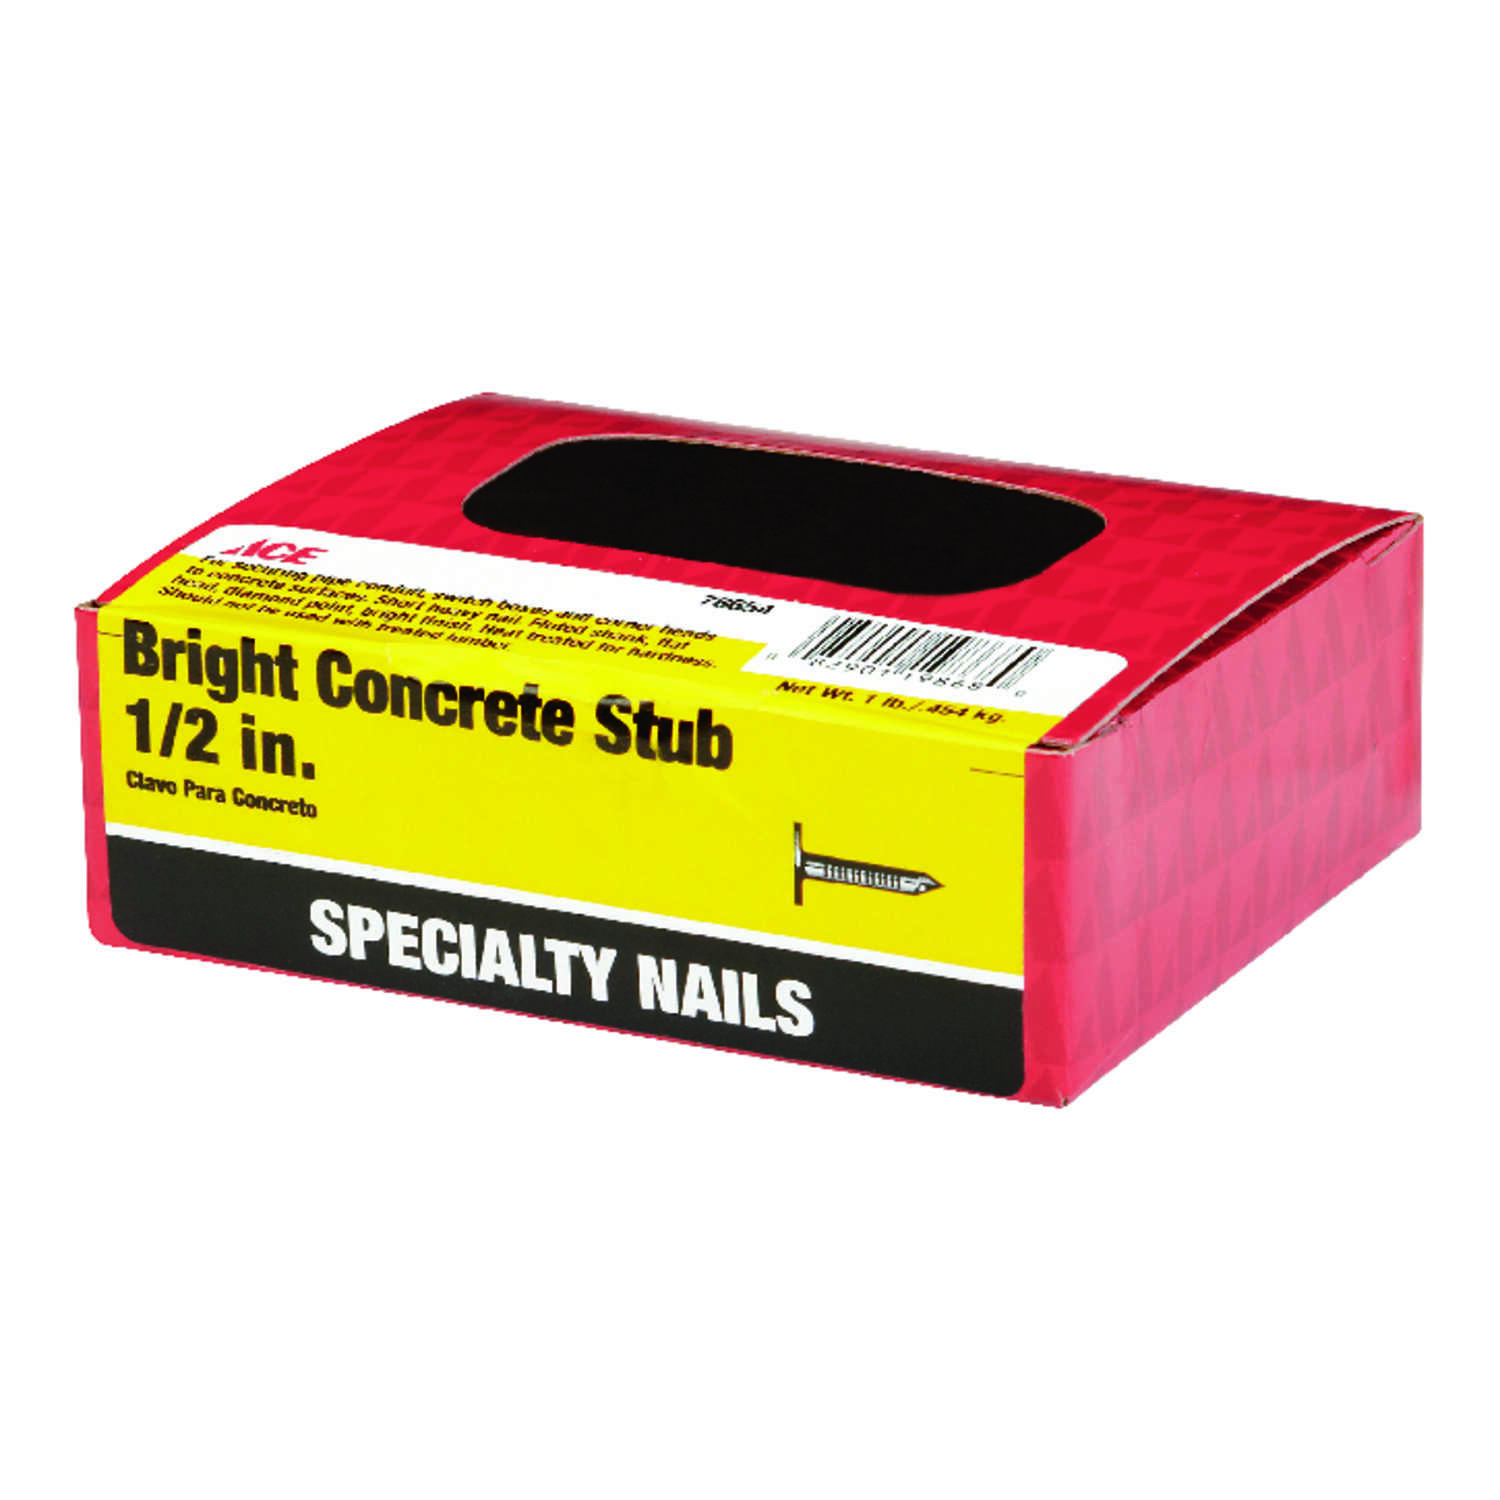 Ace  1/2 in. L Concrete  Bright  Nail  Fluted  Flat  1 lb.